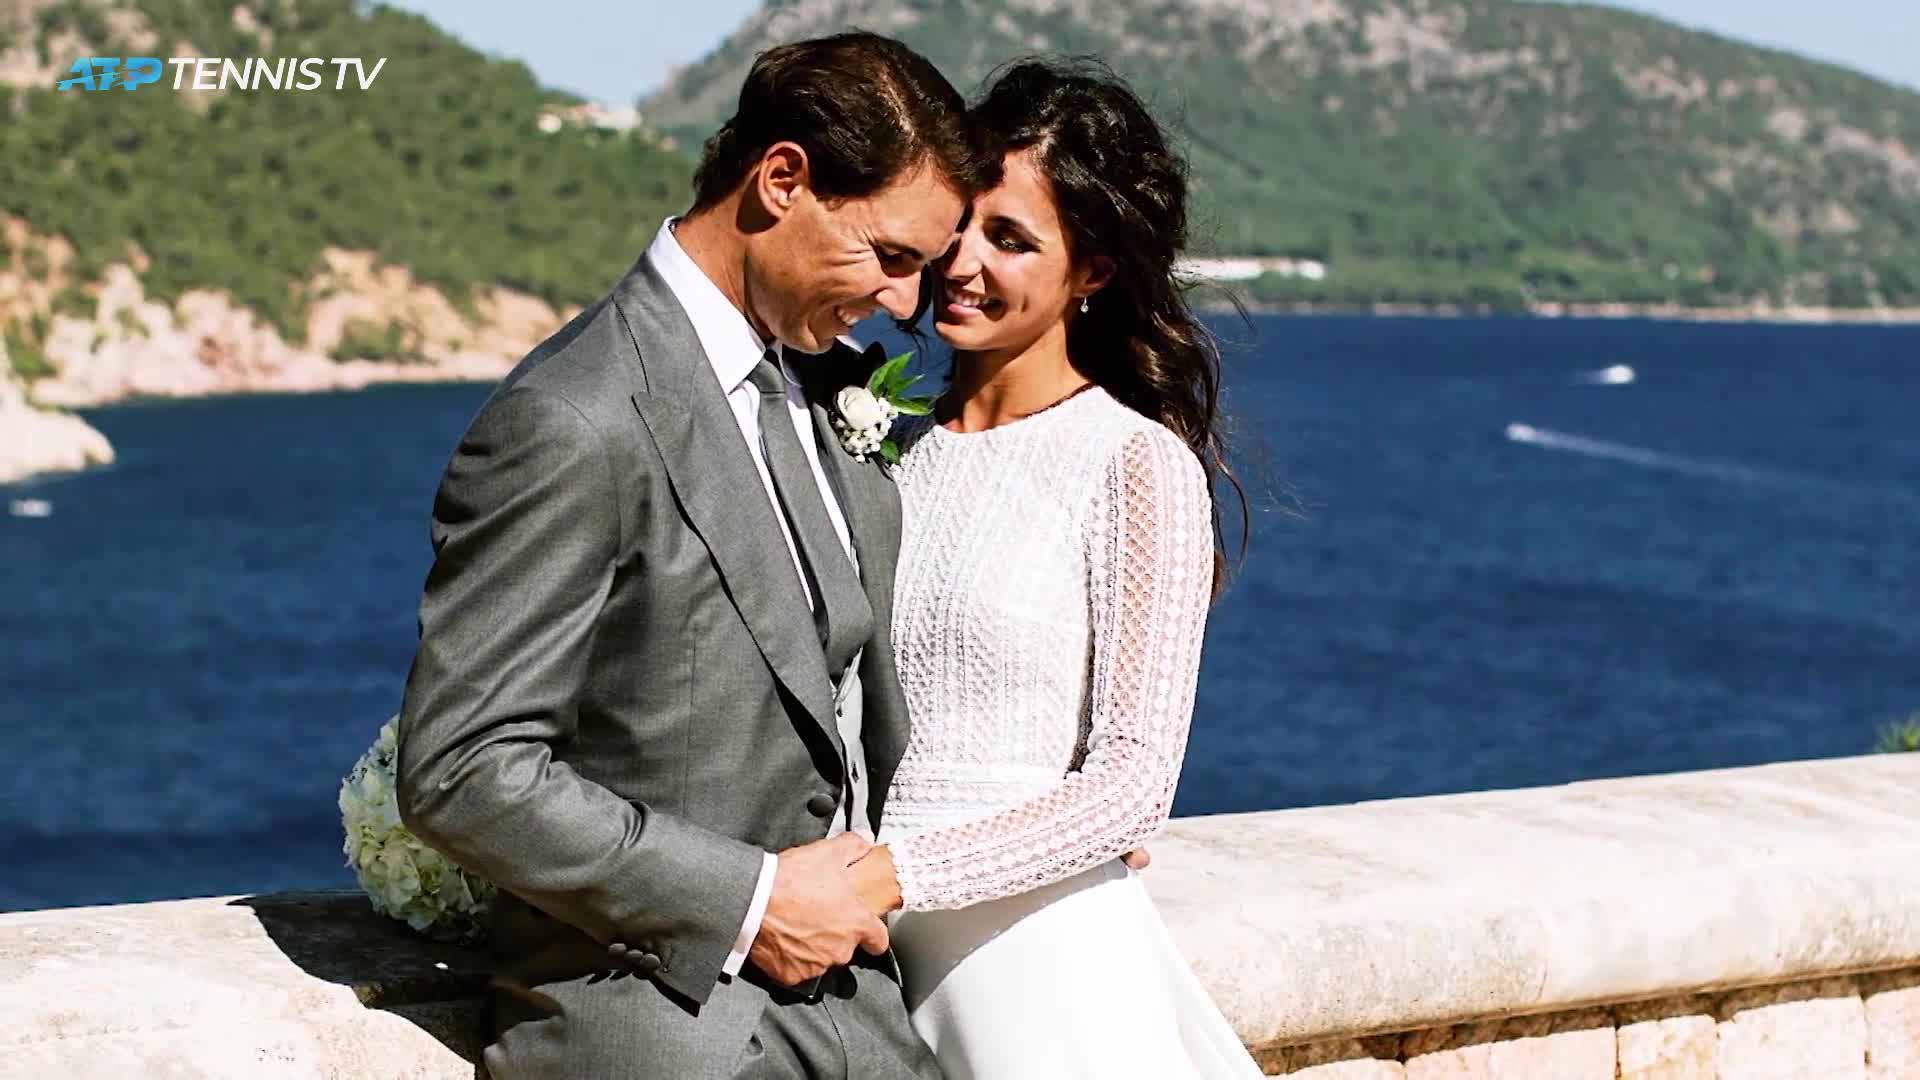 Rafael Nadal and Maria Francisca Perello wed on 19 October in Mallorca.